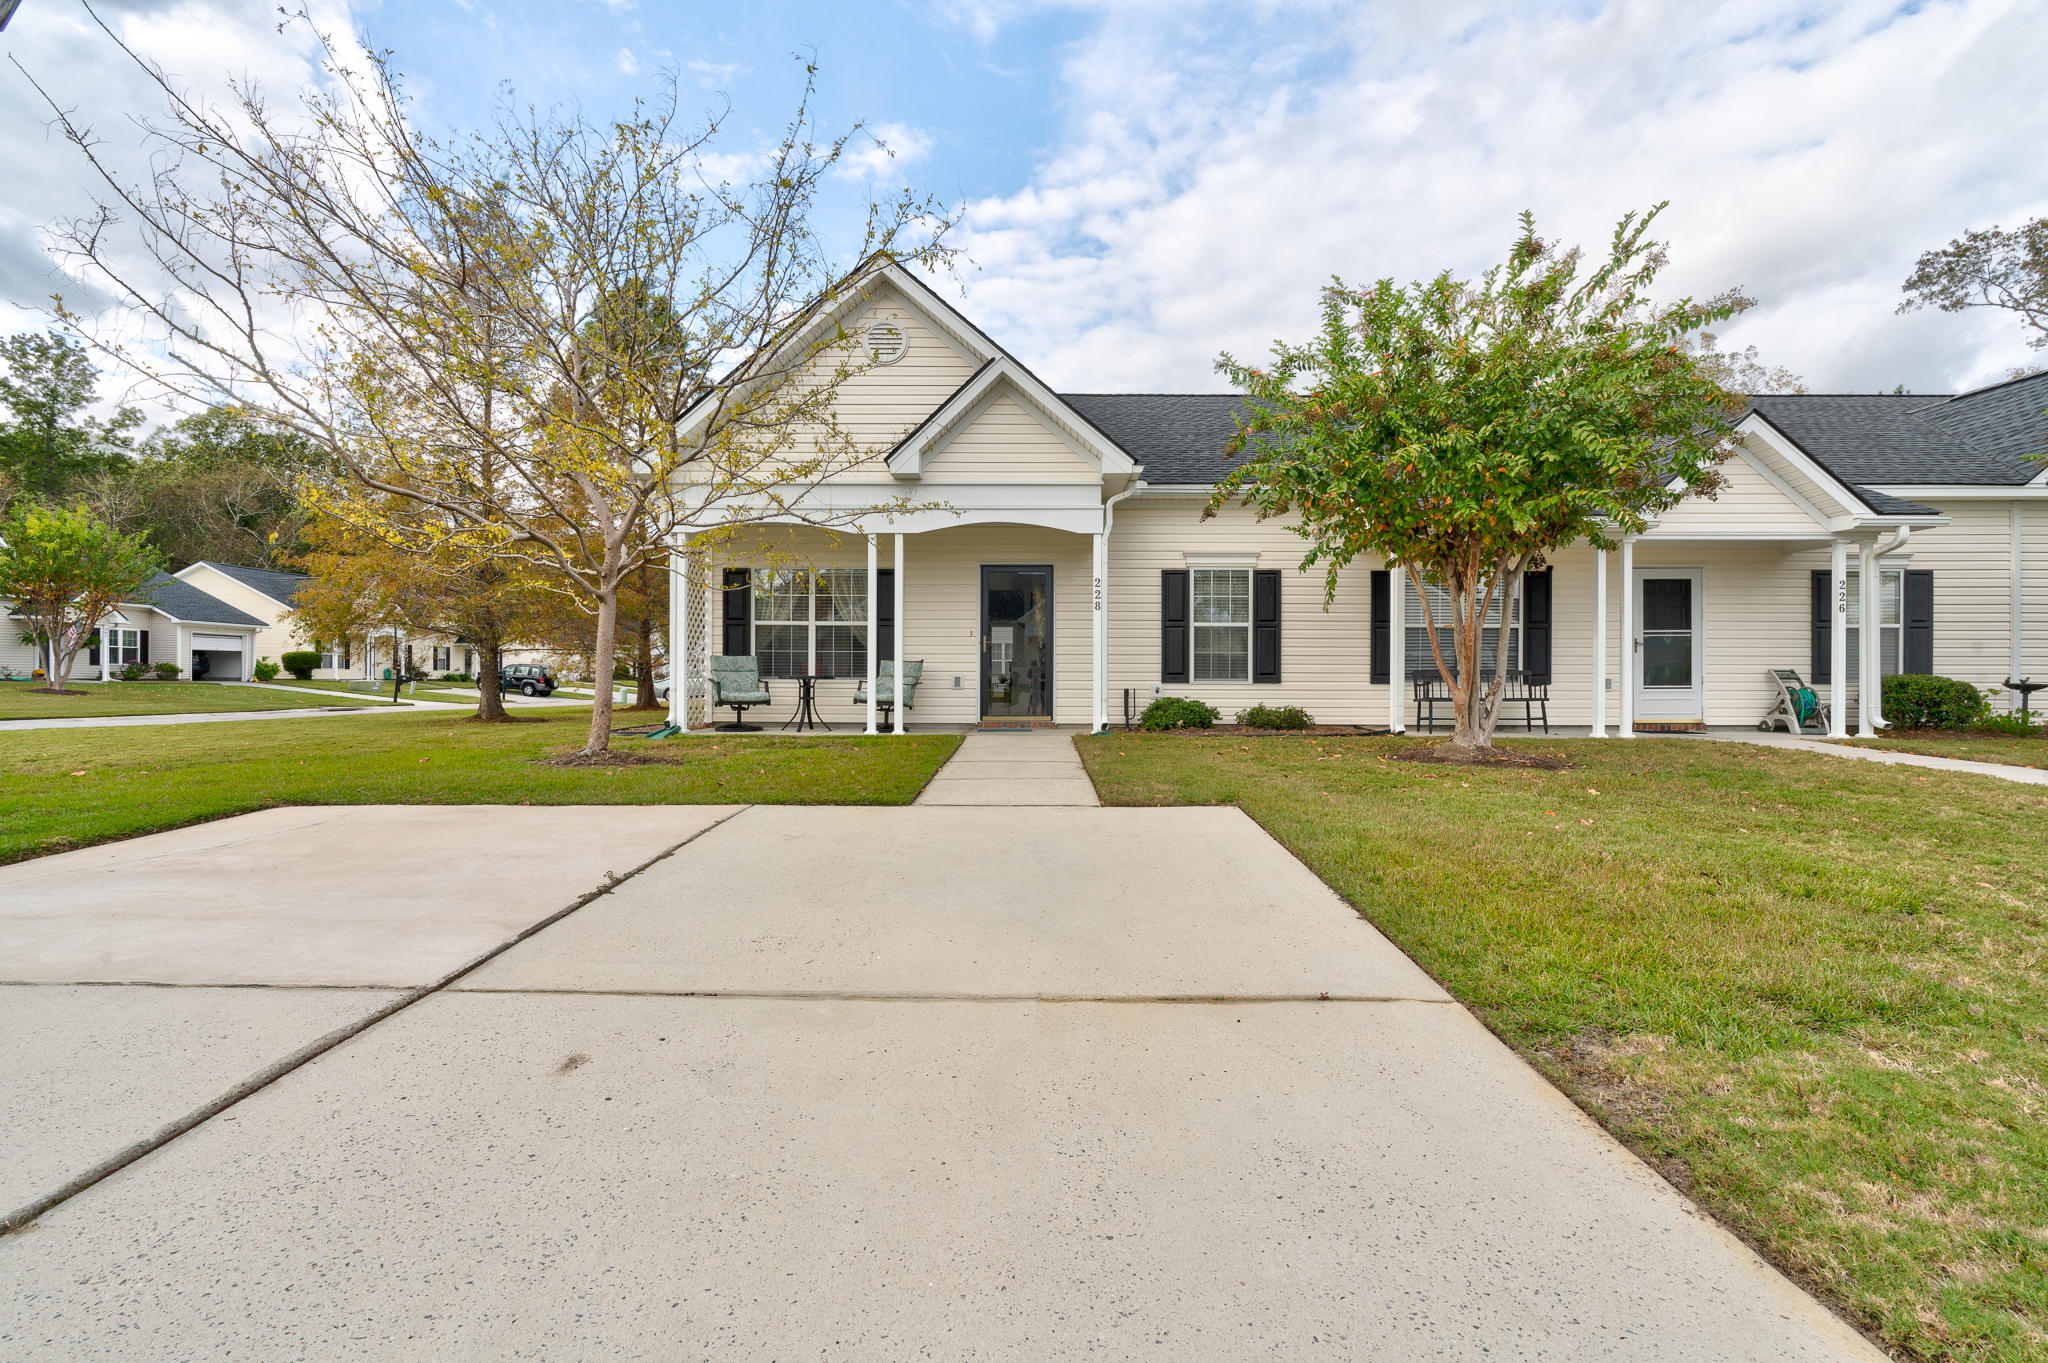 Oakbrook Commons Homes For Sale - 228 Hardee, Summerville, SC - 7